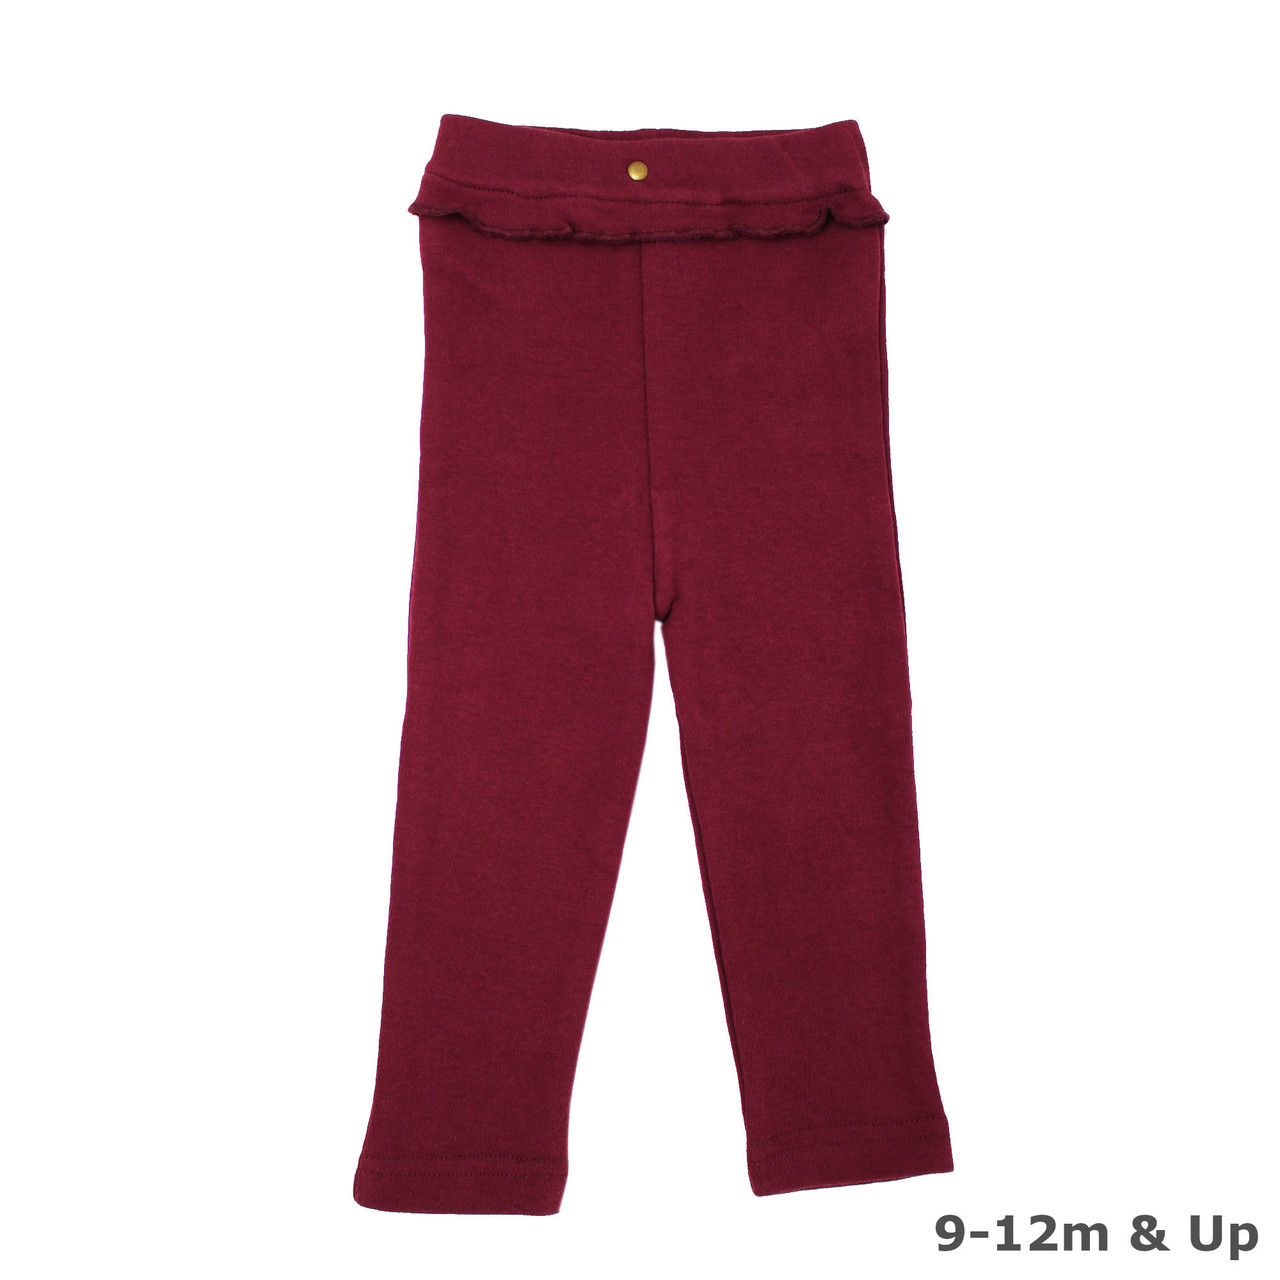 Organic Ruffle Footed Legging in Cranberry (9-12m & Up), Flat